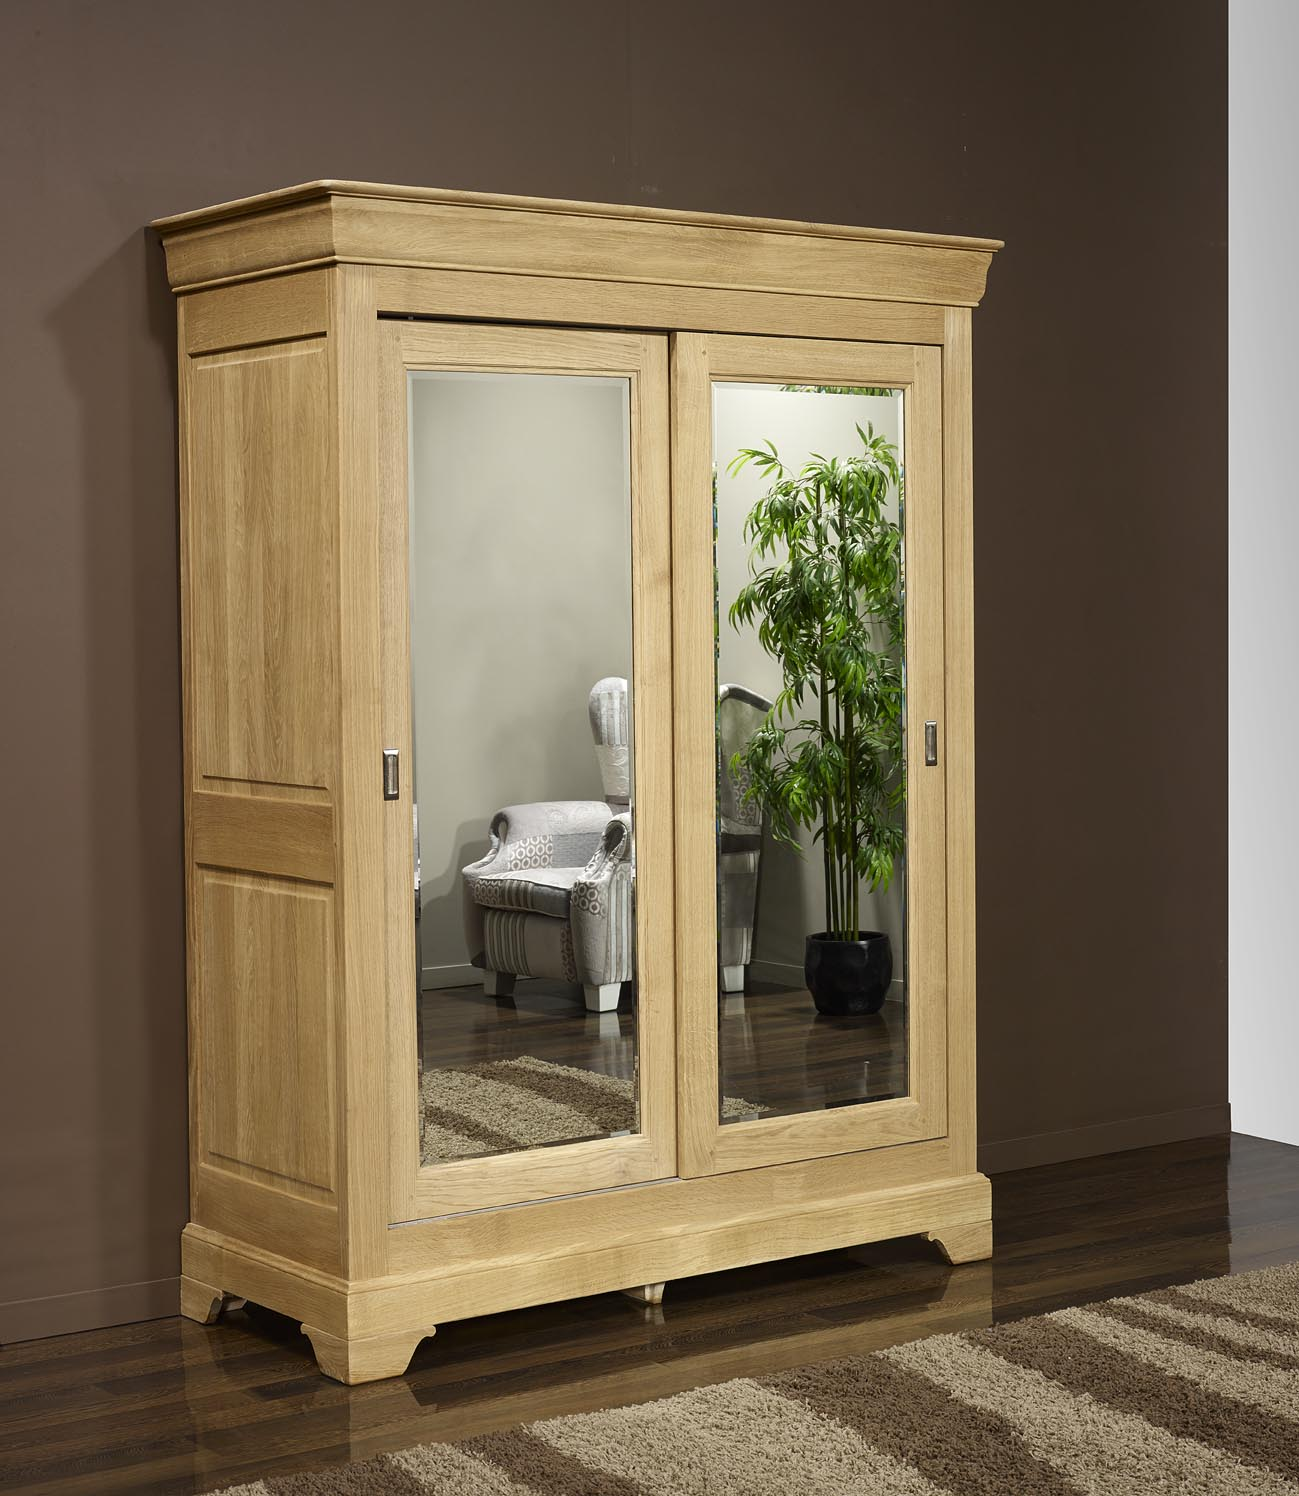 armoire bois massif porte coulissante grand armoire pin. Black Bedroom Furniture Sets. Home Design Ideas